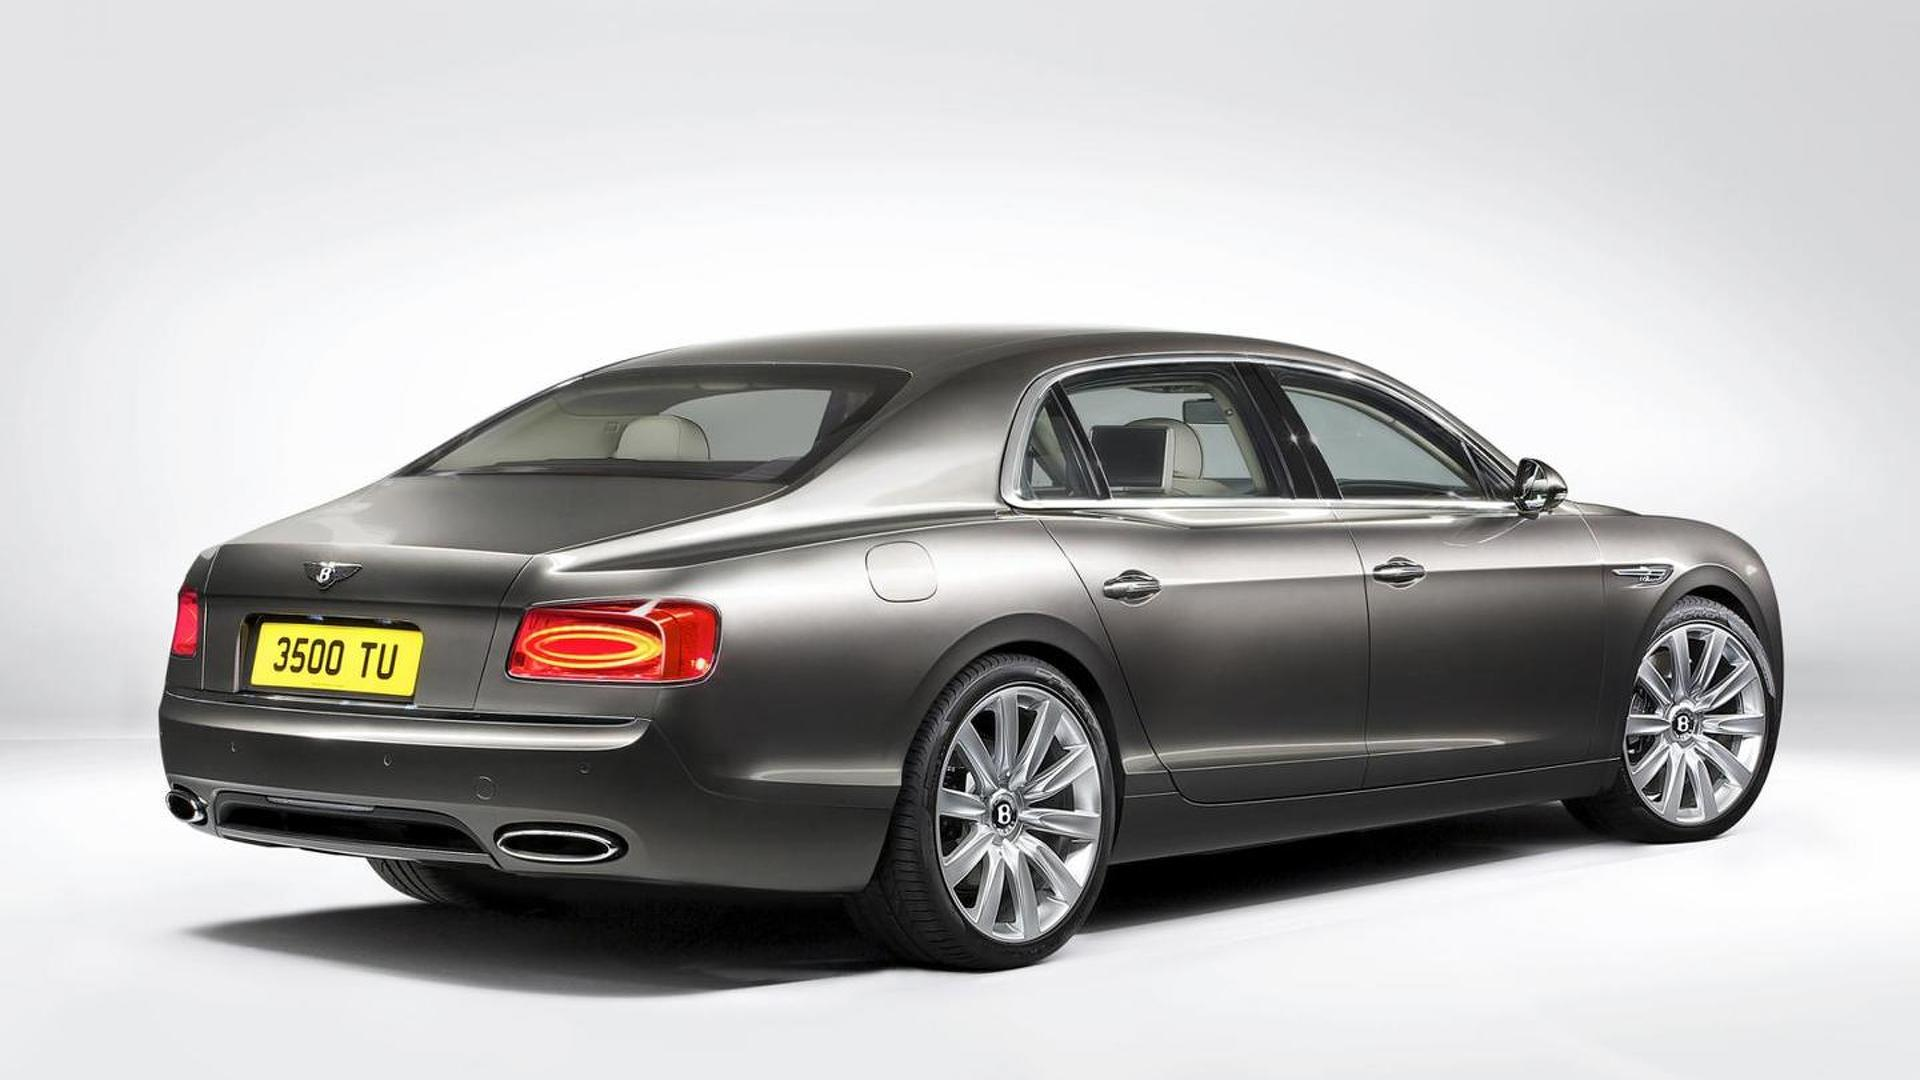 Research 2014                   Bentley Continental pictures, prices and reviews